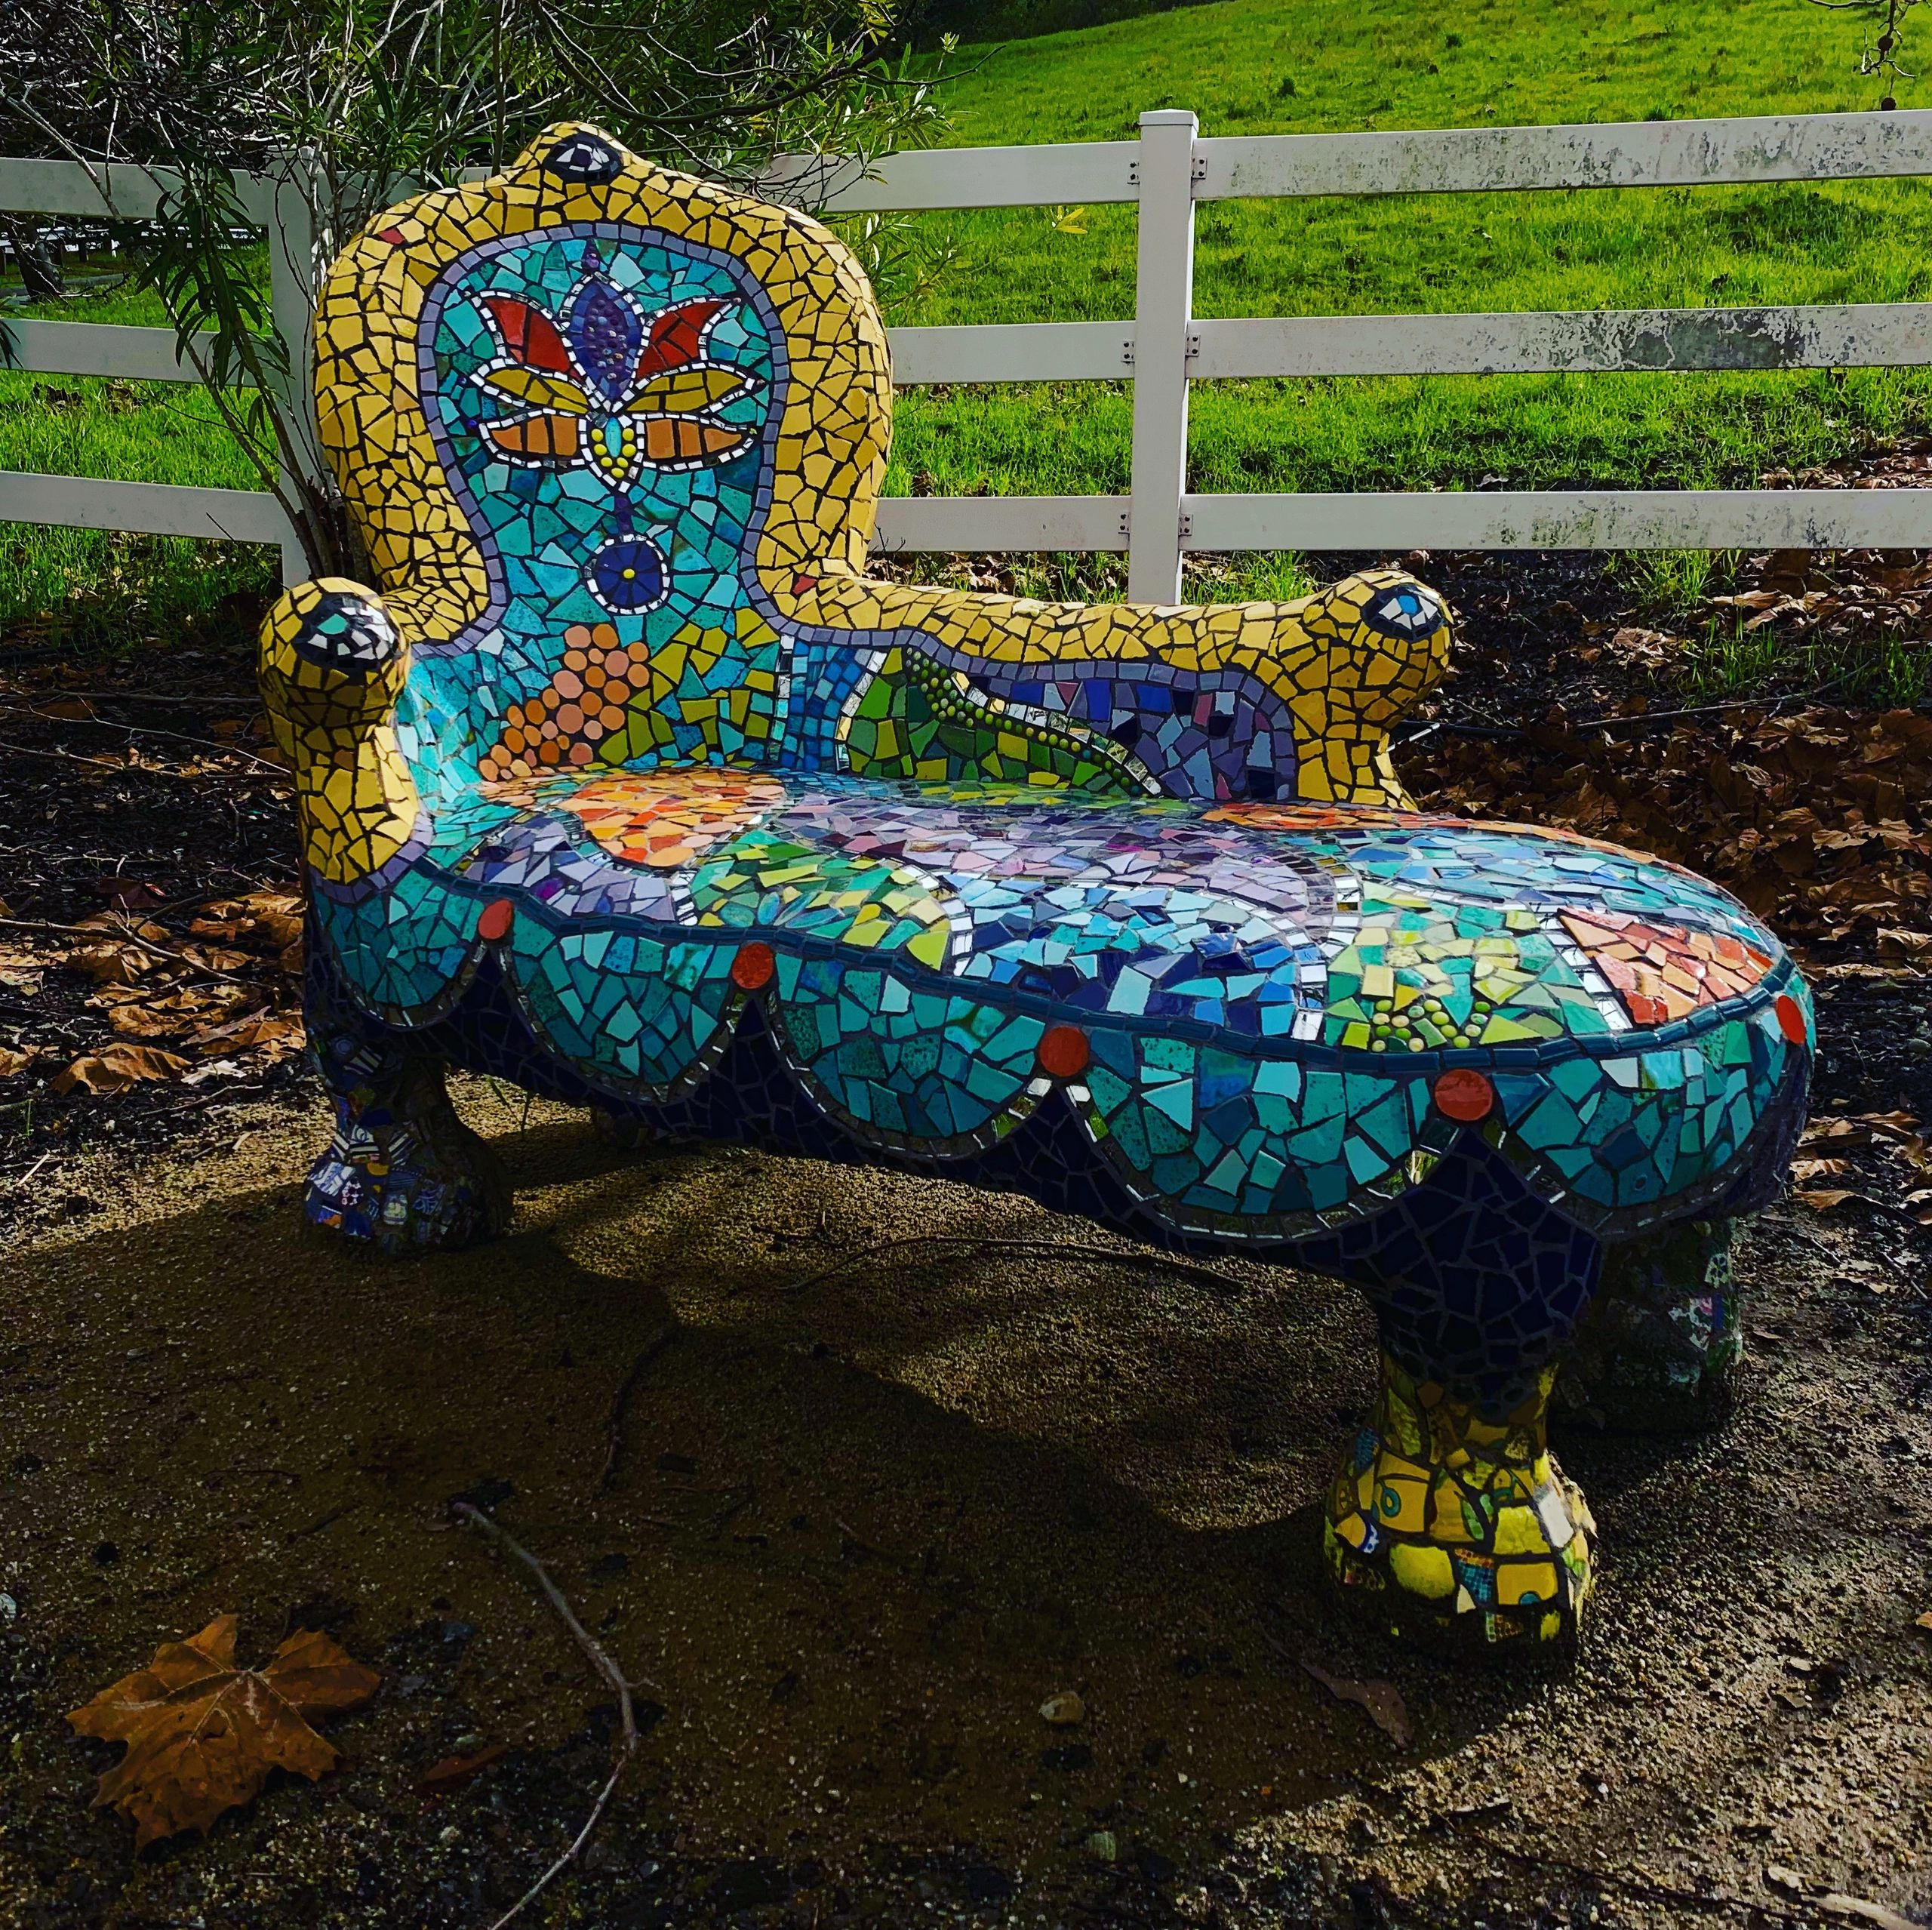 Mosaic Chaise - Created in 2019 from an antique fainting chair imported from Italy in 1960's.